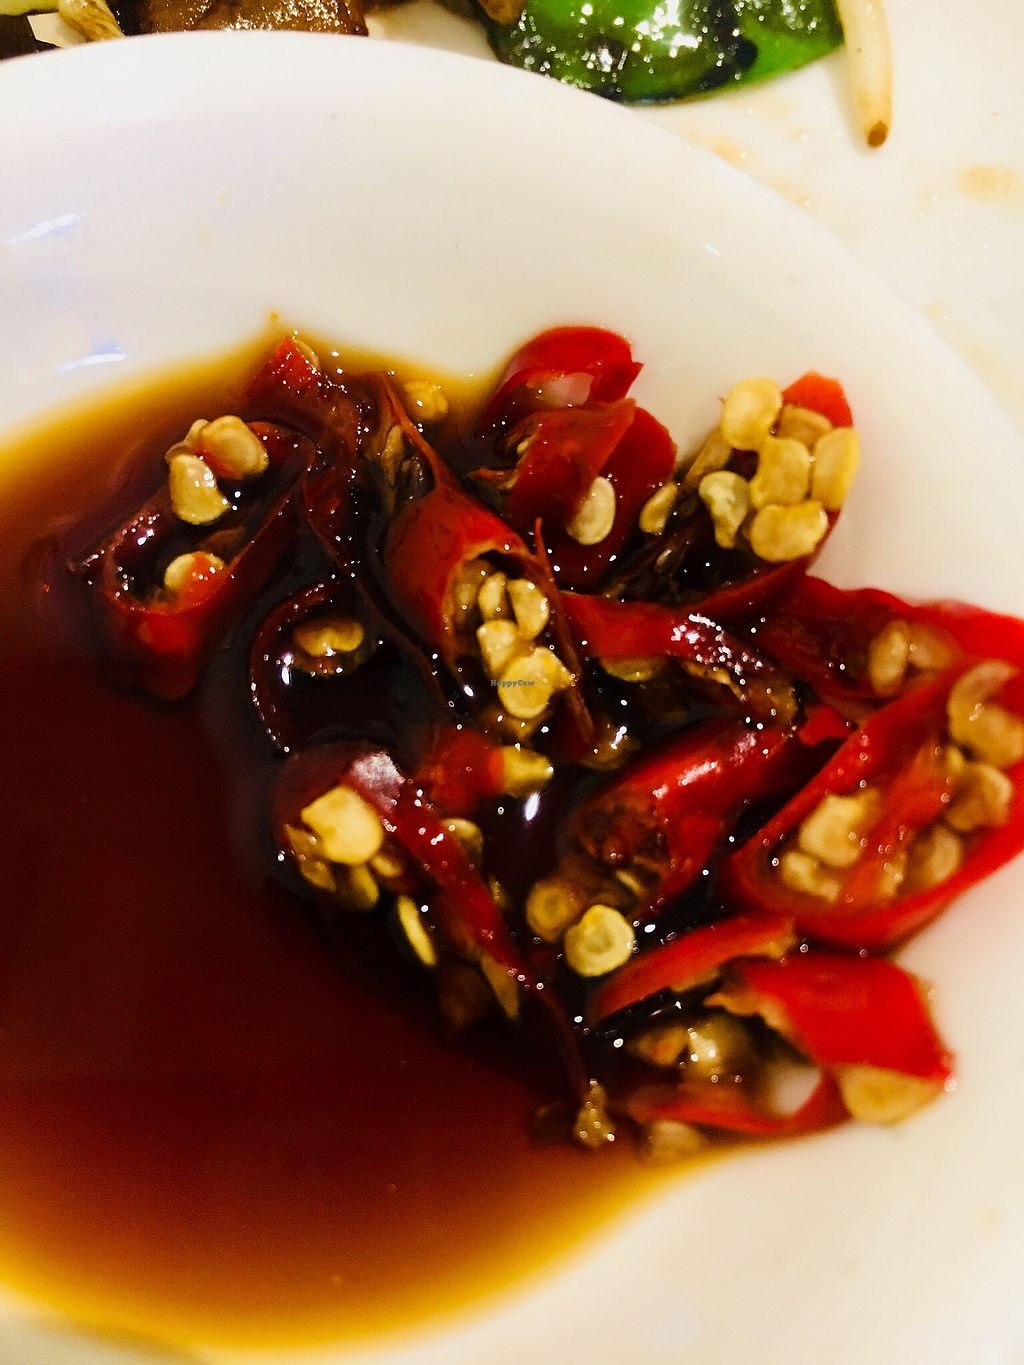 """Photo of Vegie Mum  by <a href=""""/members/profile/Pips"""">Pips</a> <br/>Chopped Chilli and soy sauce  <br/> November 10, 2017  - <a href='/contact/abuse/image/6273/324055'>Report</a>"""